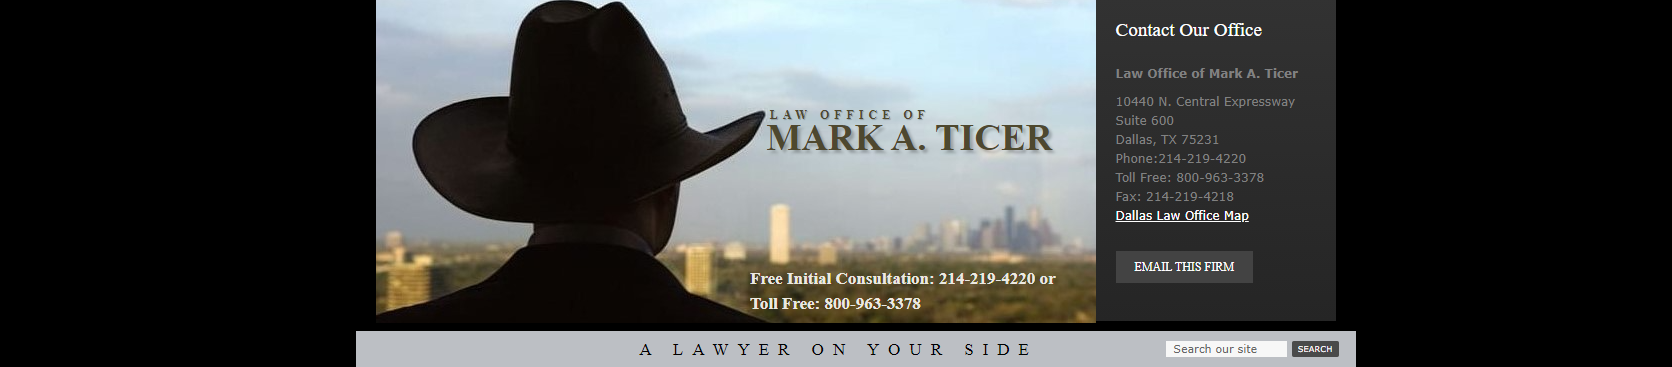 Law Office of Mark A. Ticer